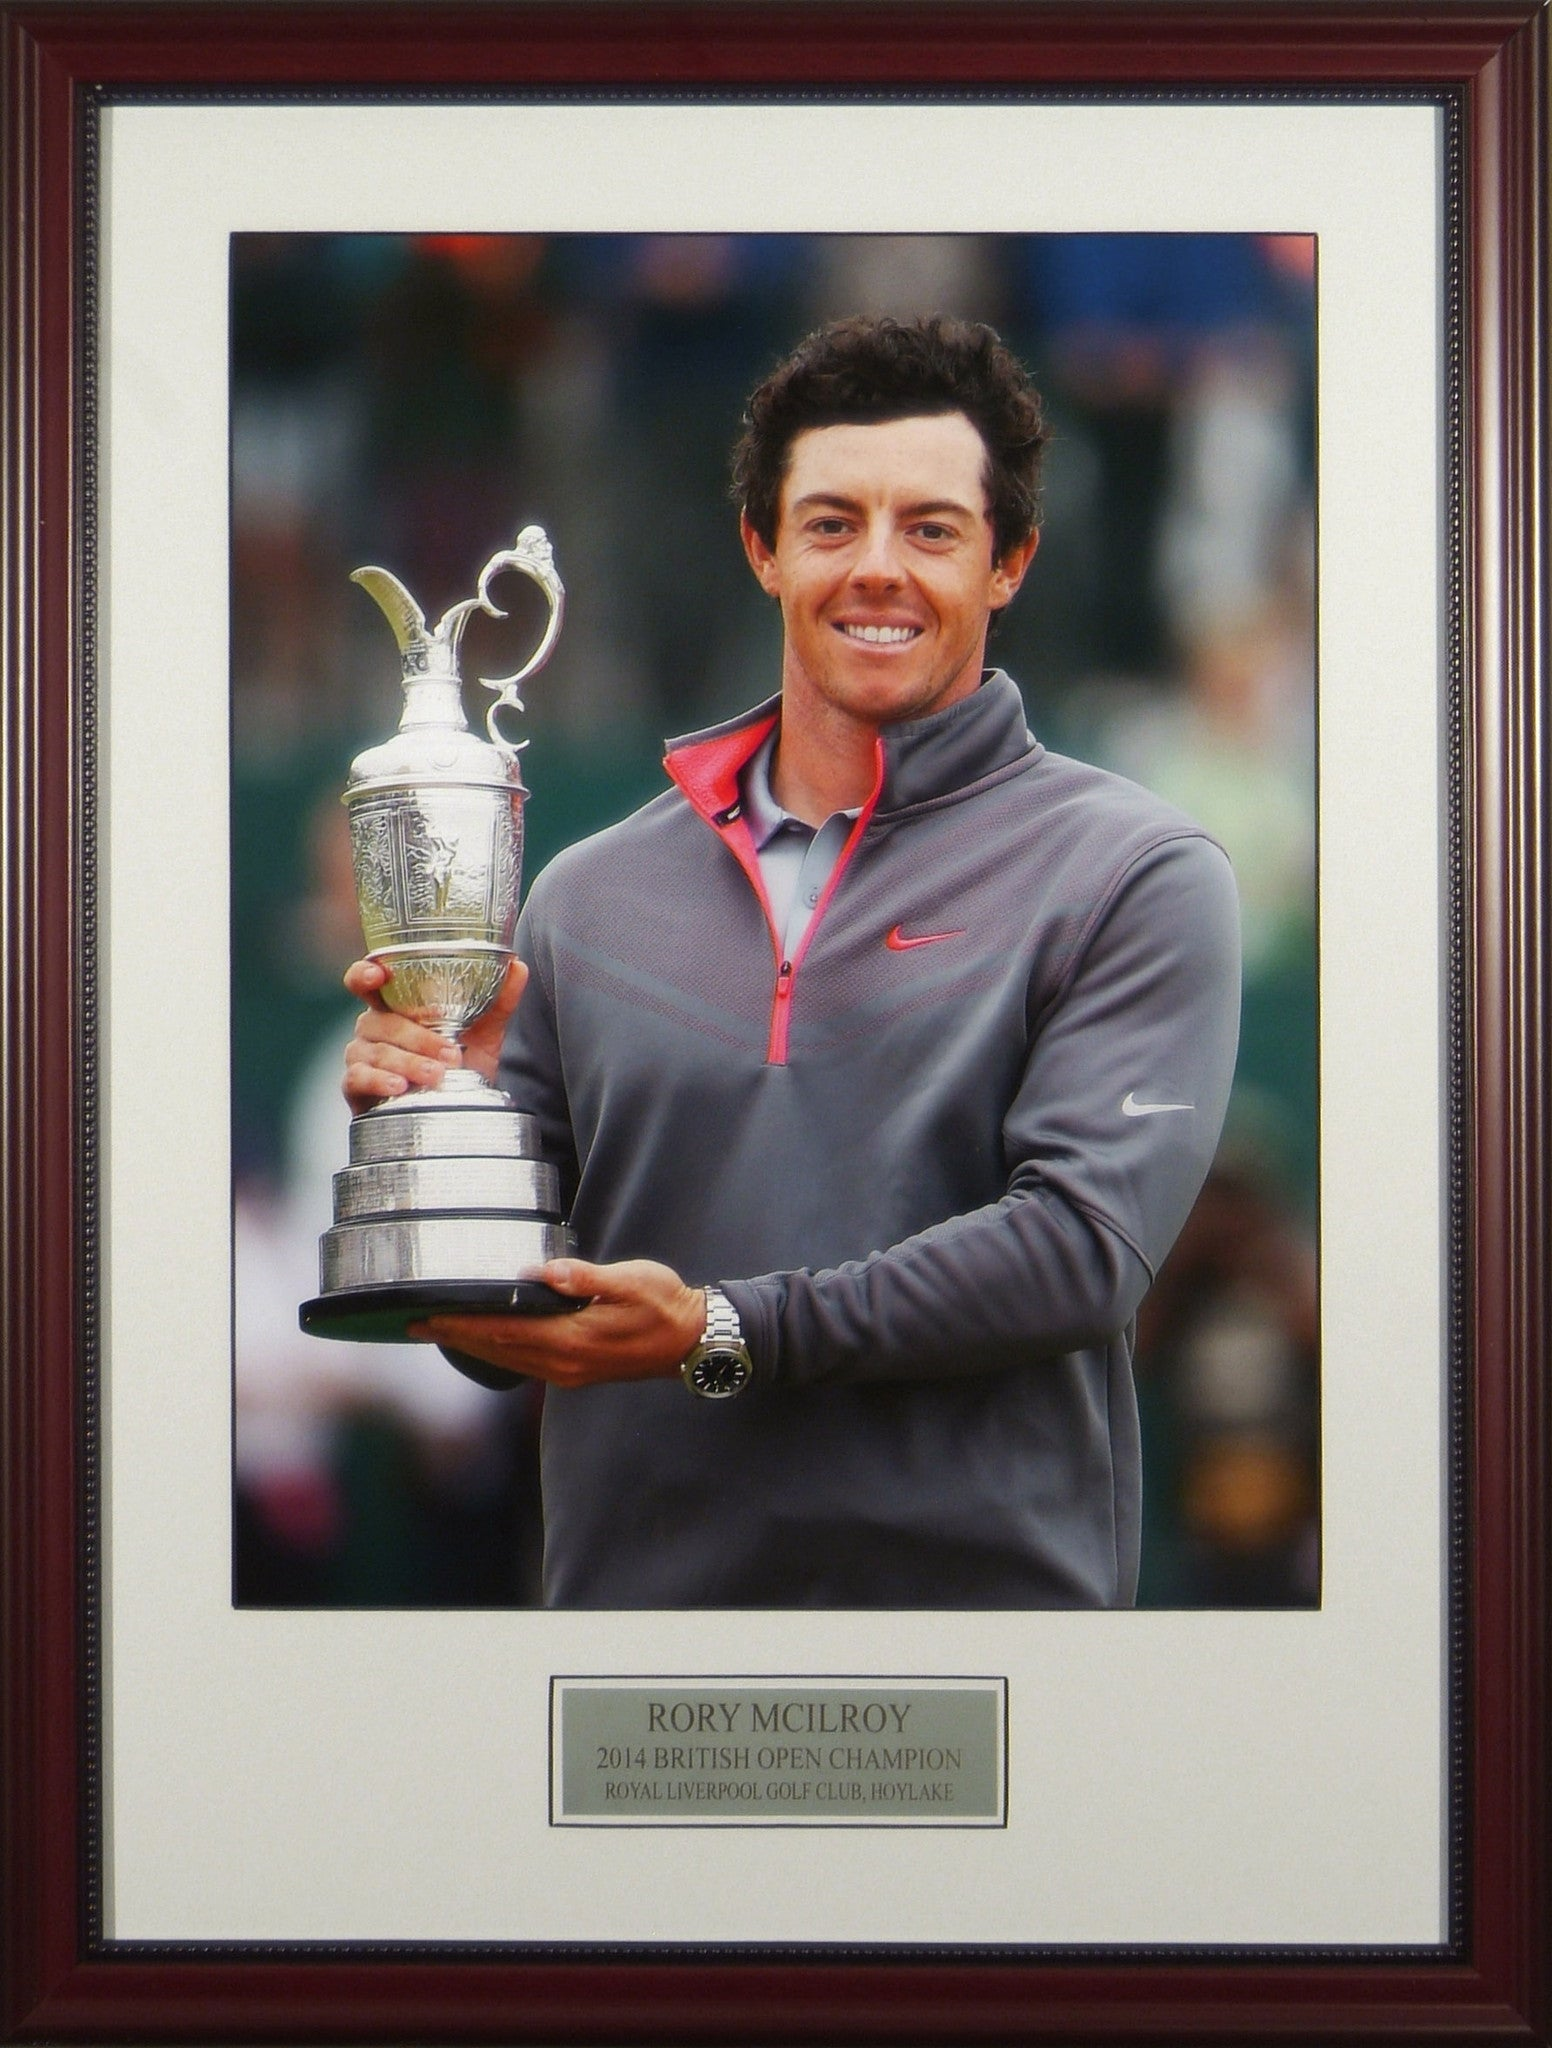 Rory McIlroy 2014 British Open